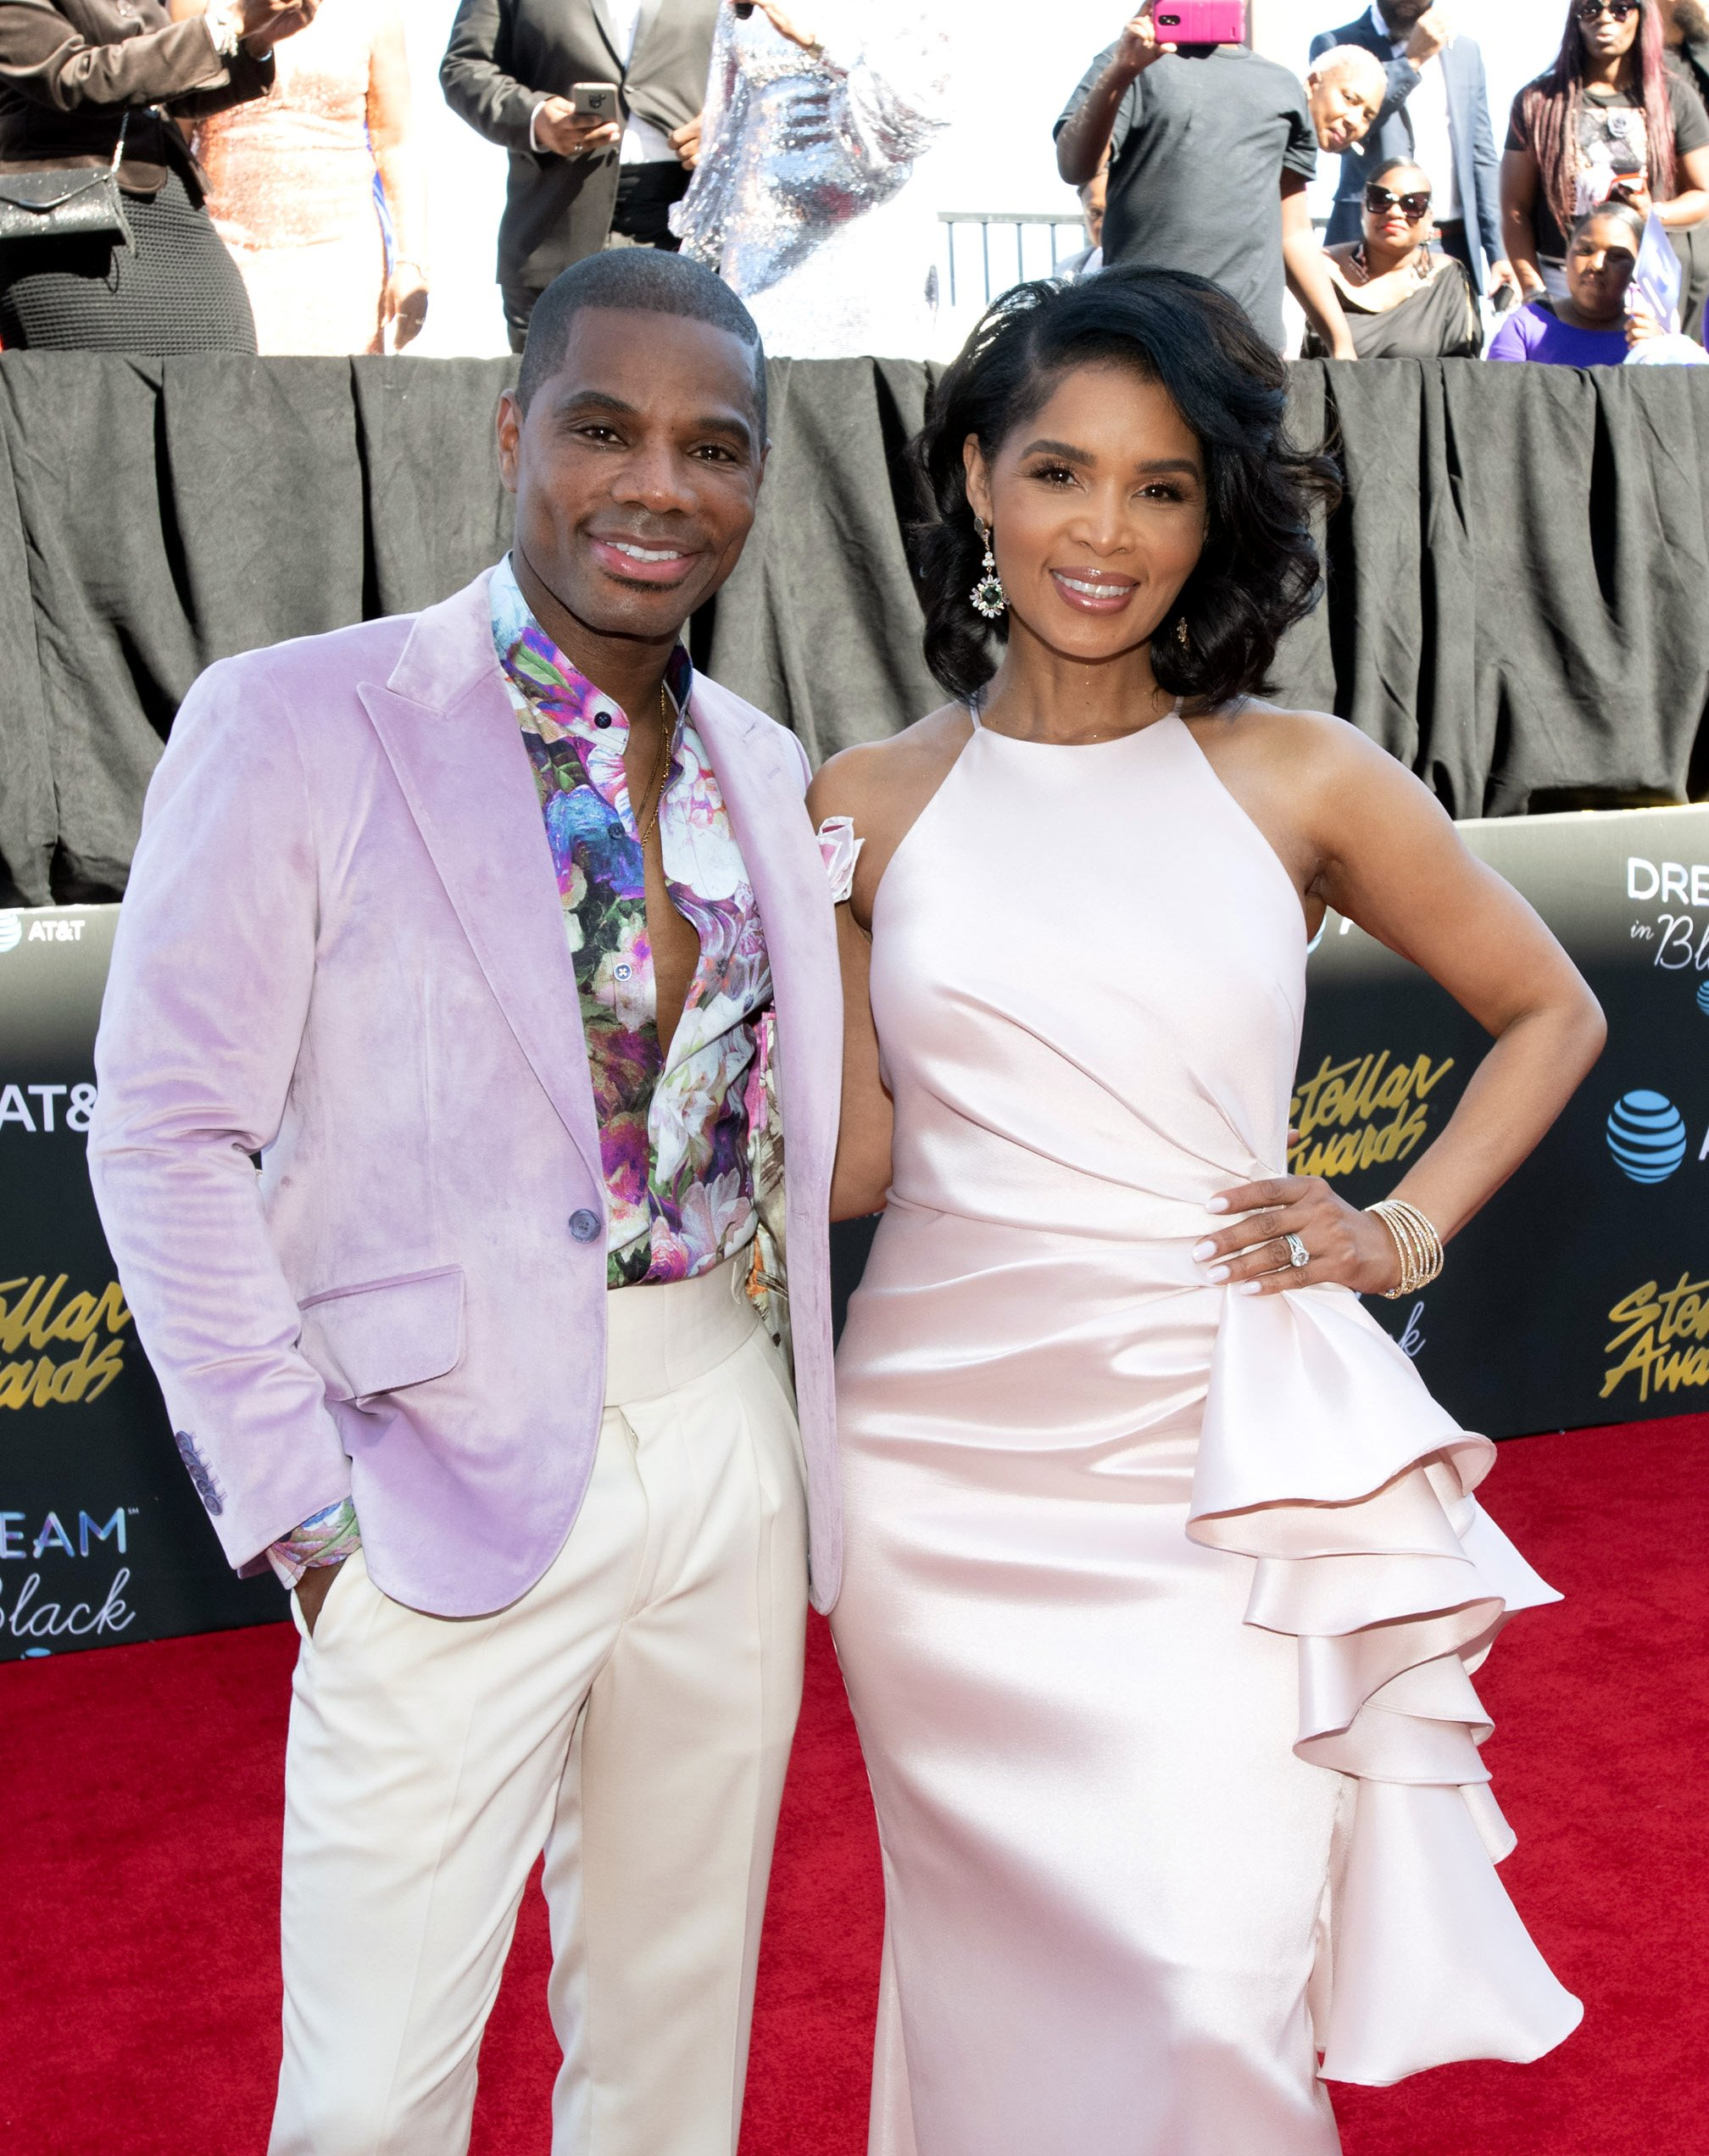 Kirk and his wife Tammy Franklin appearing at the 34th annual Stellar Gospel Music Awards on March 29, 2019. | Photo: Getty Images